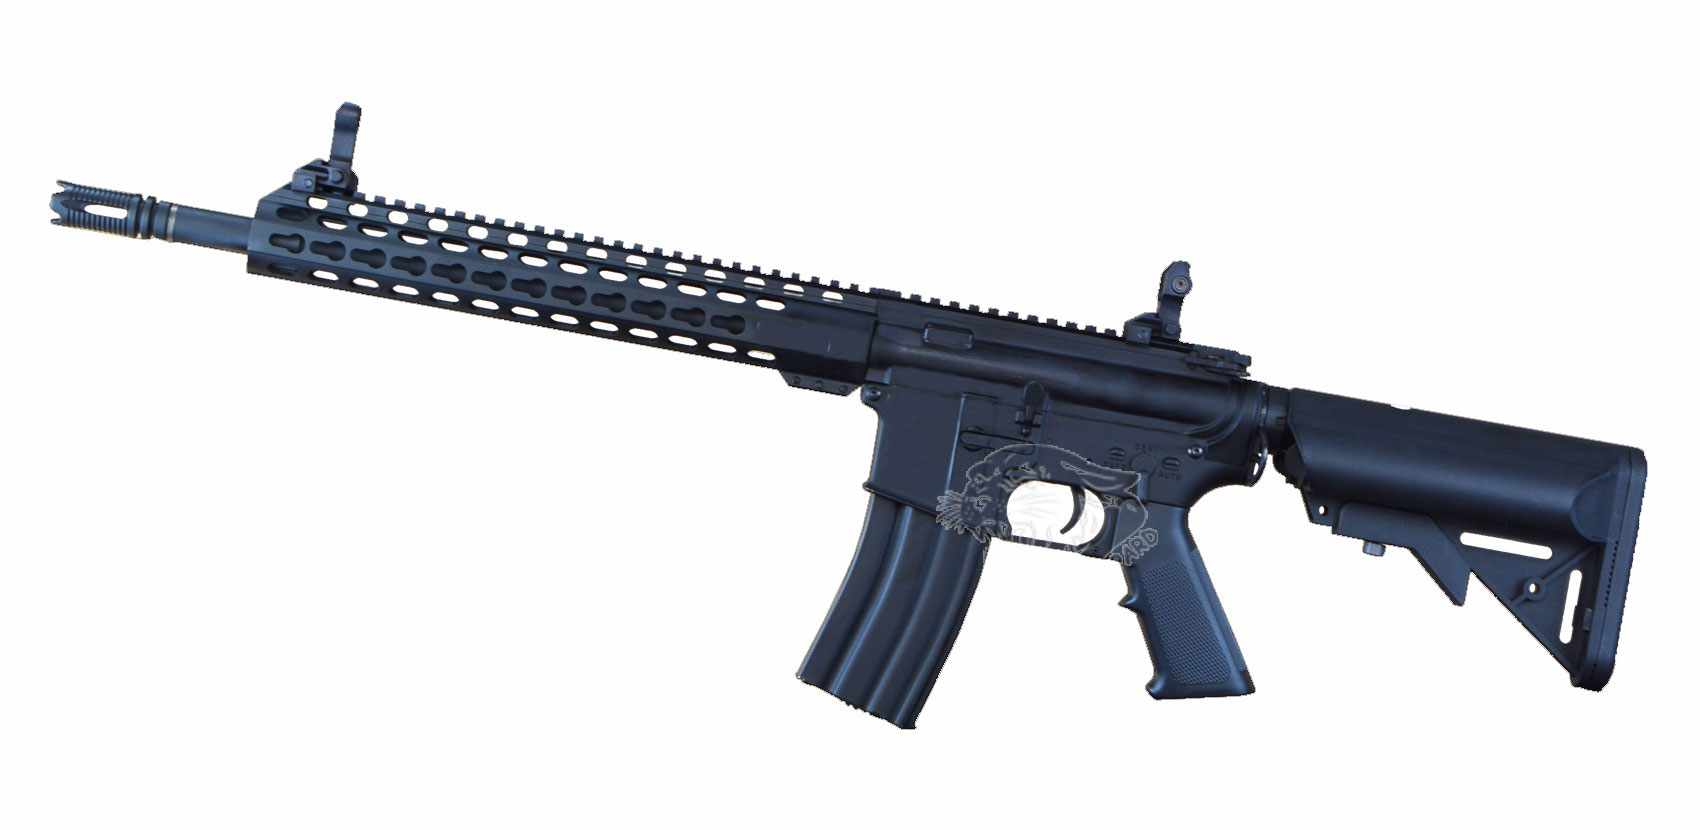 The left view for airsoft guns